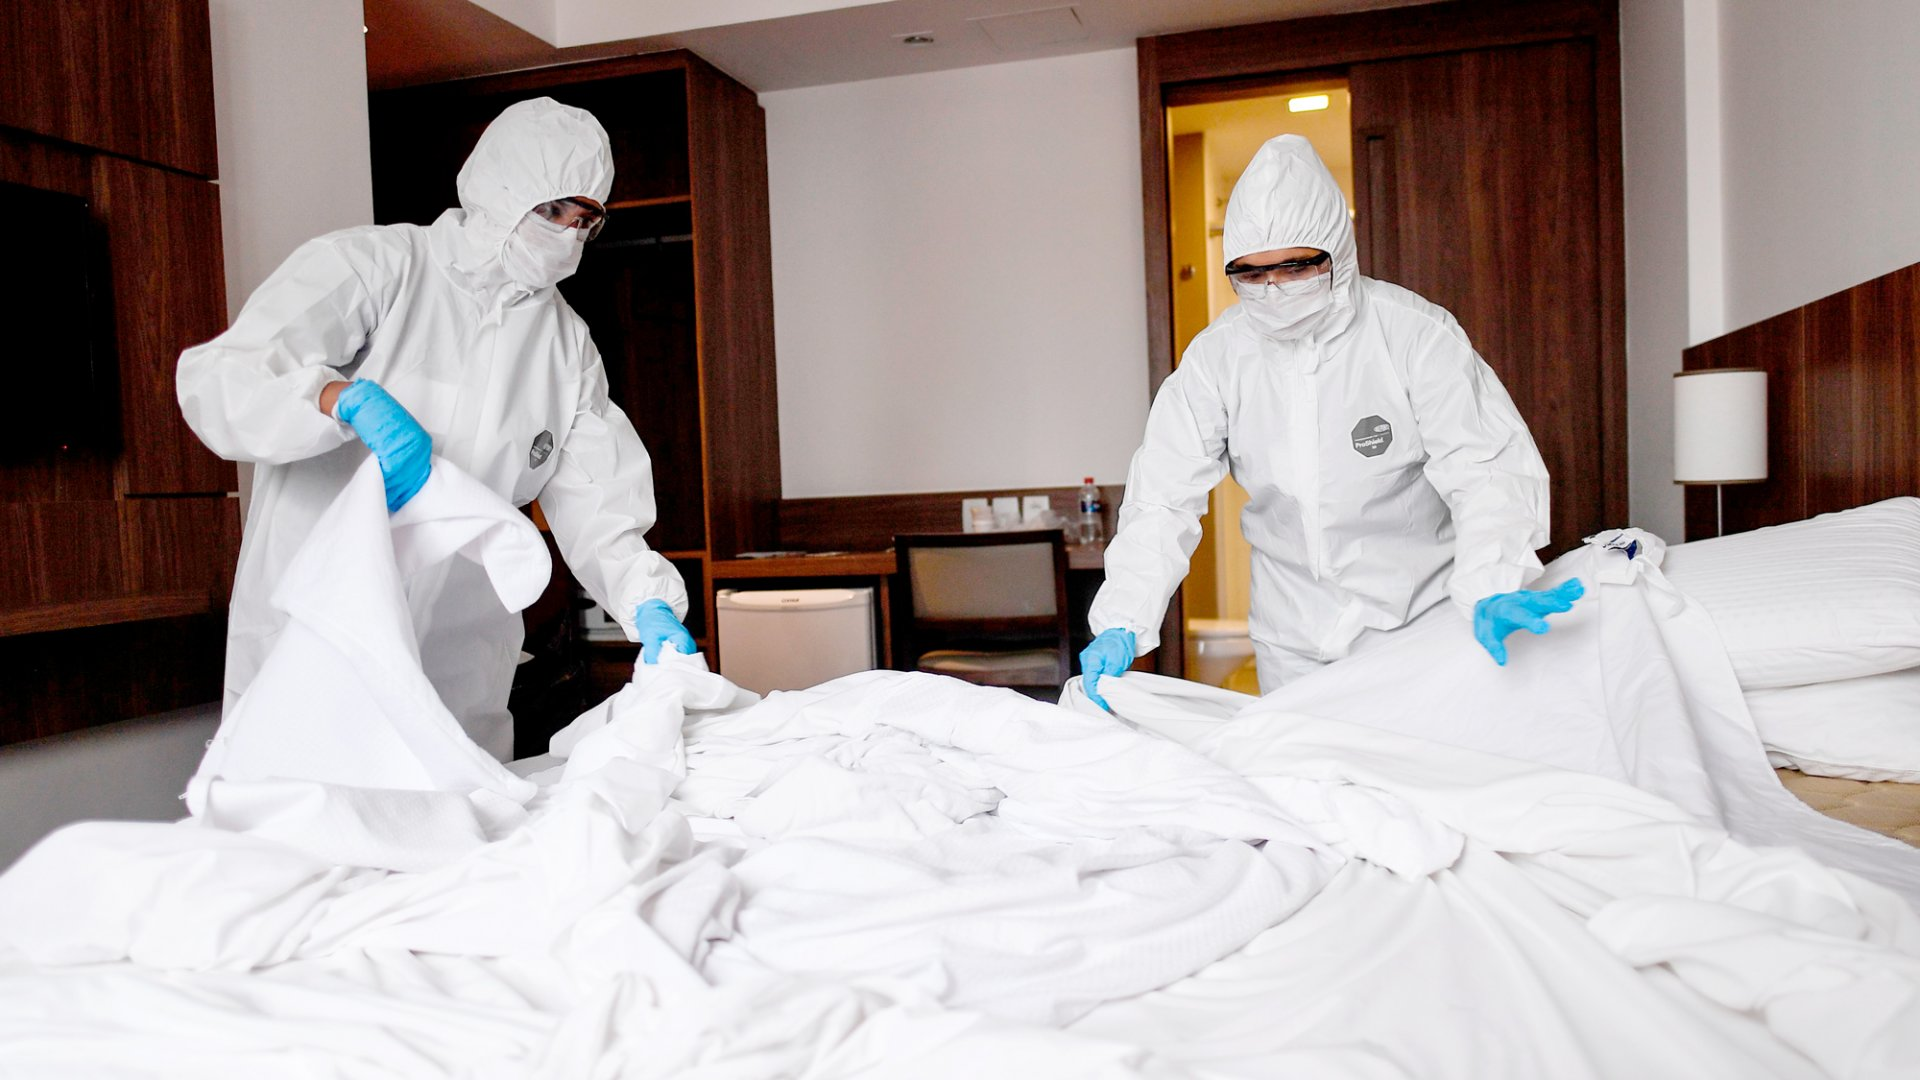 Members of the cleaning staff disinfect a room at a hotel in Belo Horizonte, Brazil on April 7, 2020. The hotel took measures such as the check-in and the check-out are done virtually, all the employees stay inside the hotel and as soon as a room is vacated, it remains closed for 72 hours after being cleaned and disinfected.